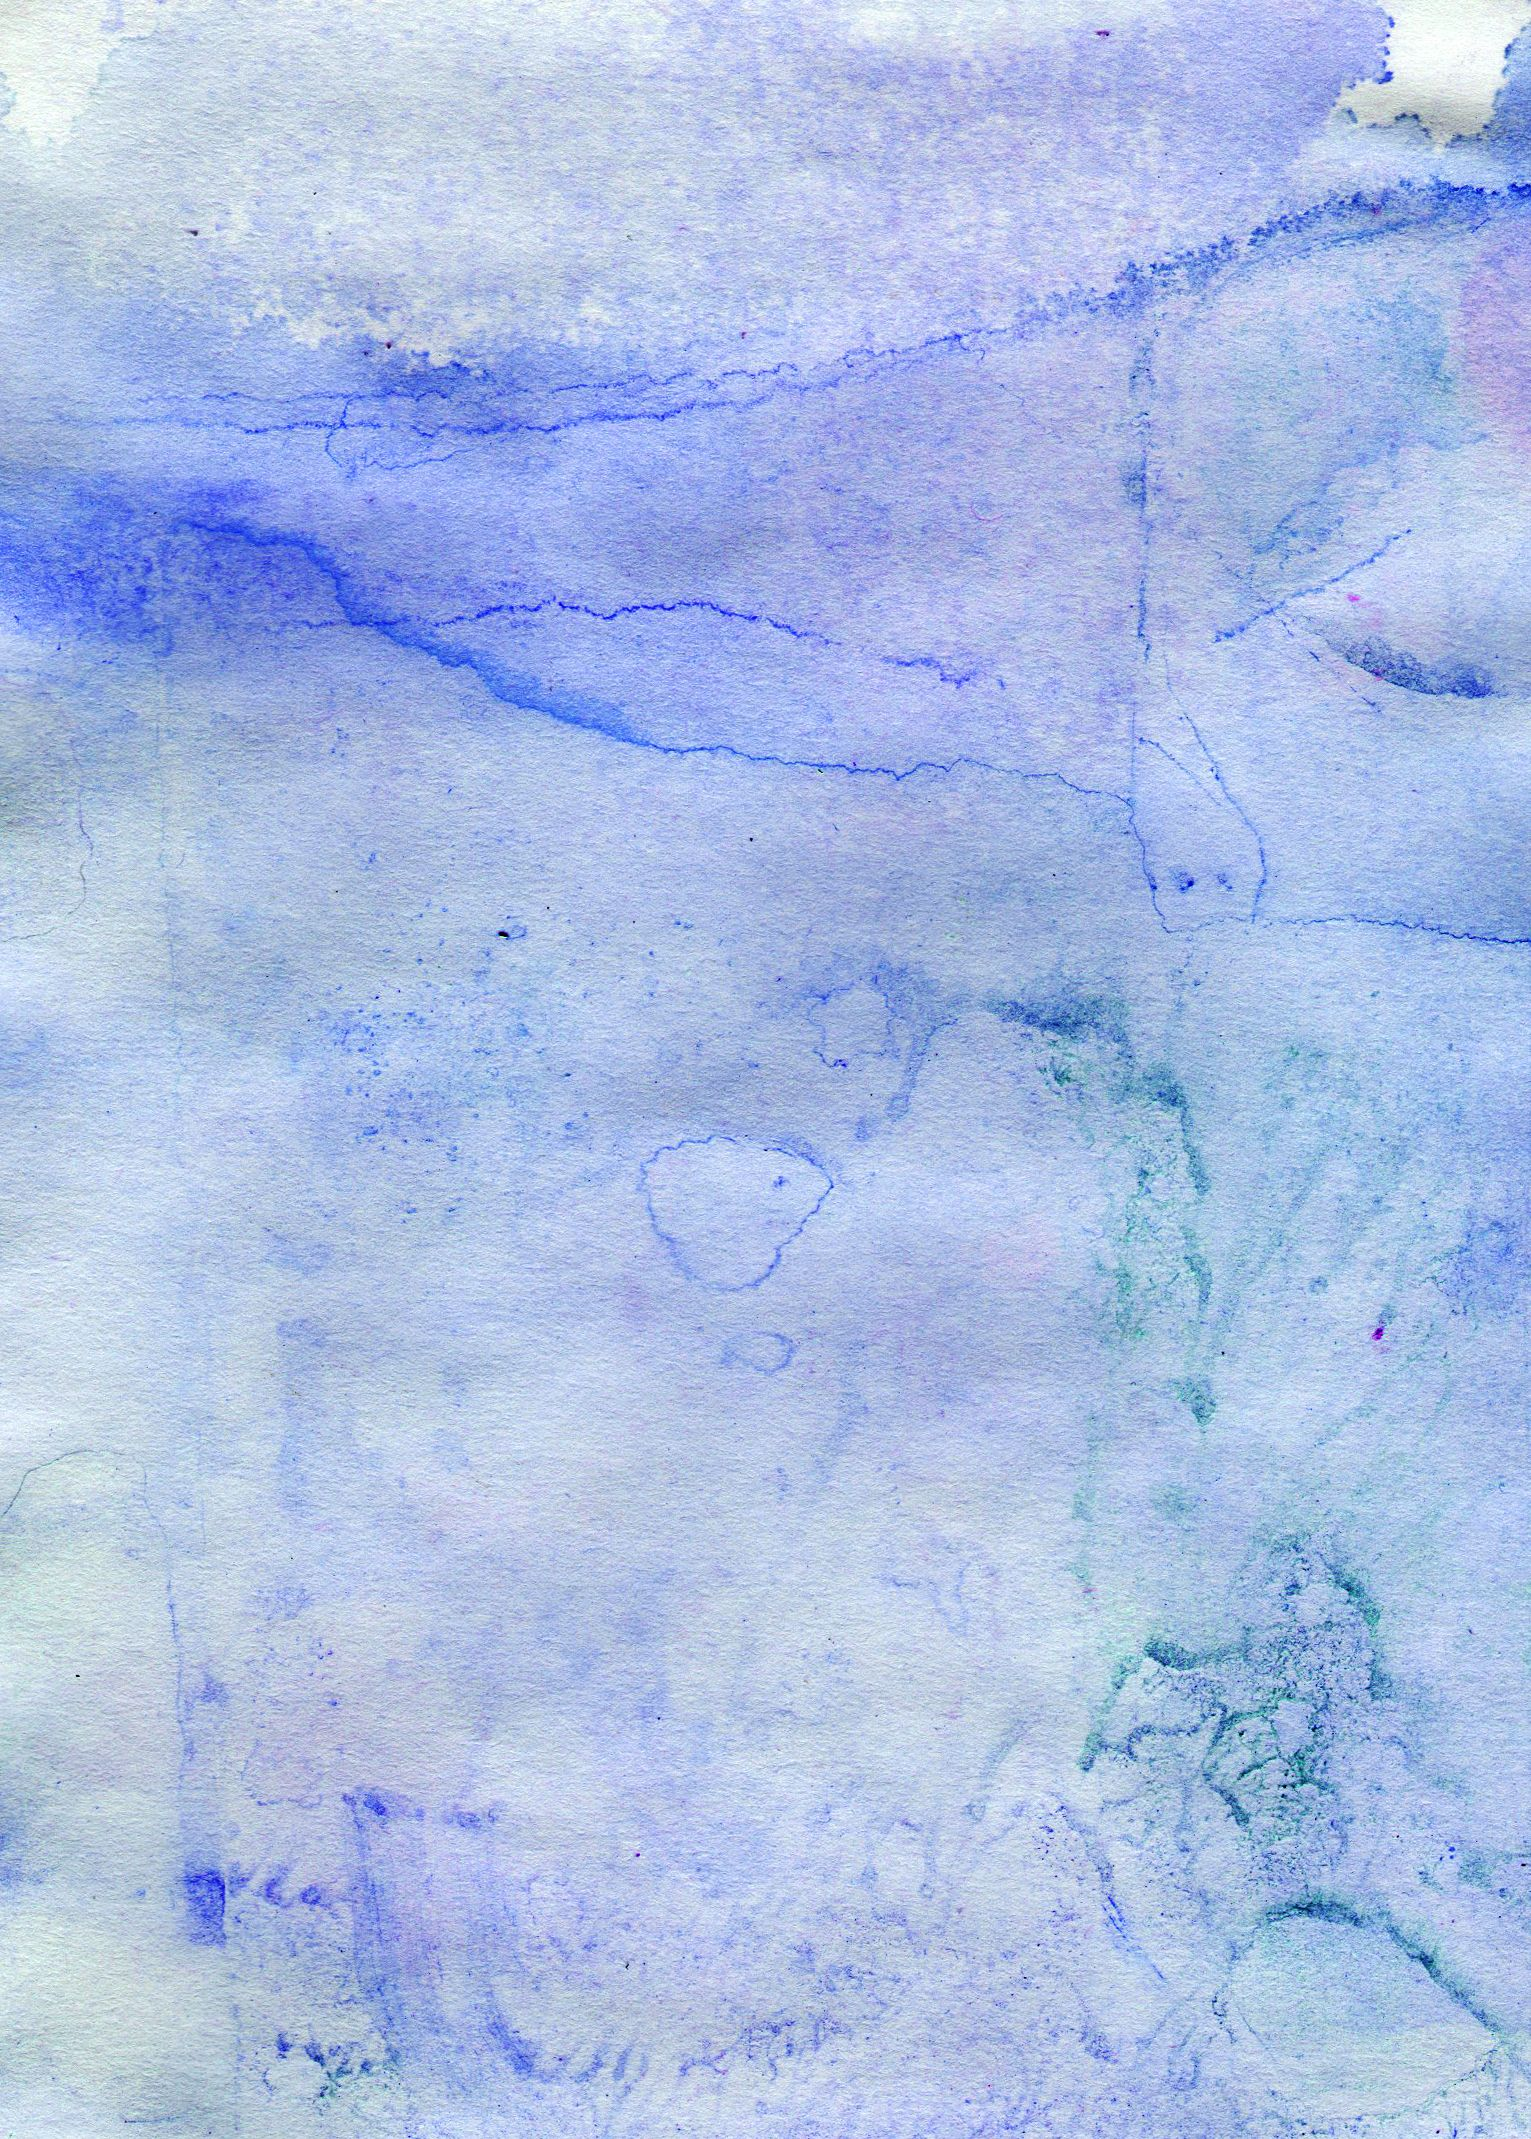 10 Free High Res Watercolor Textures Fondos De Colores Fondos